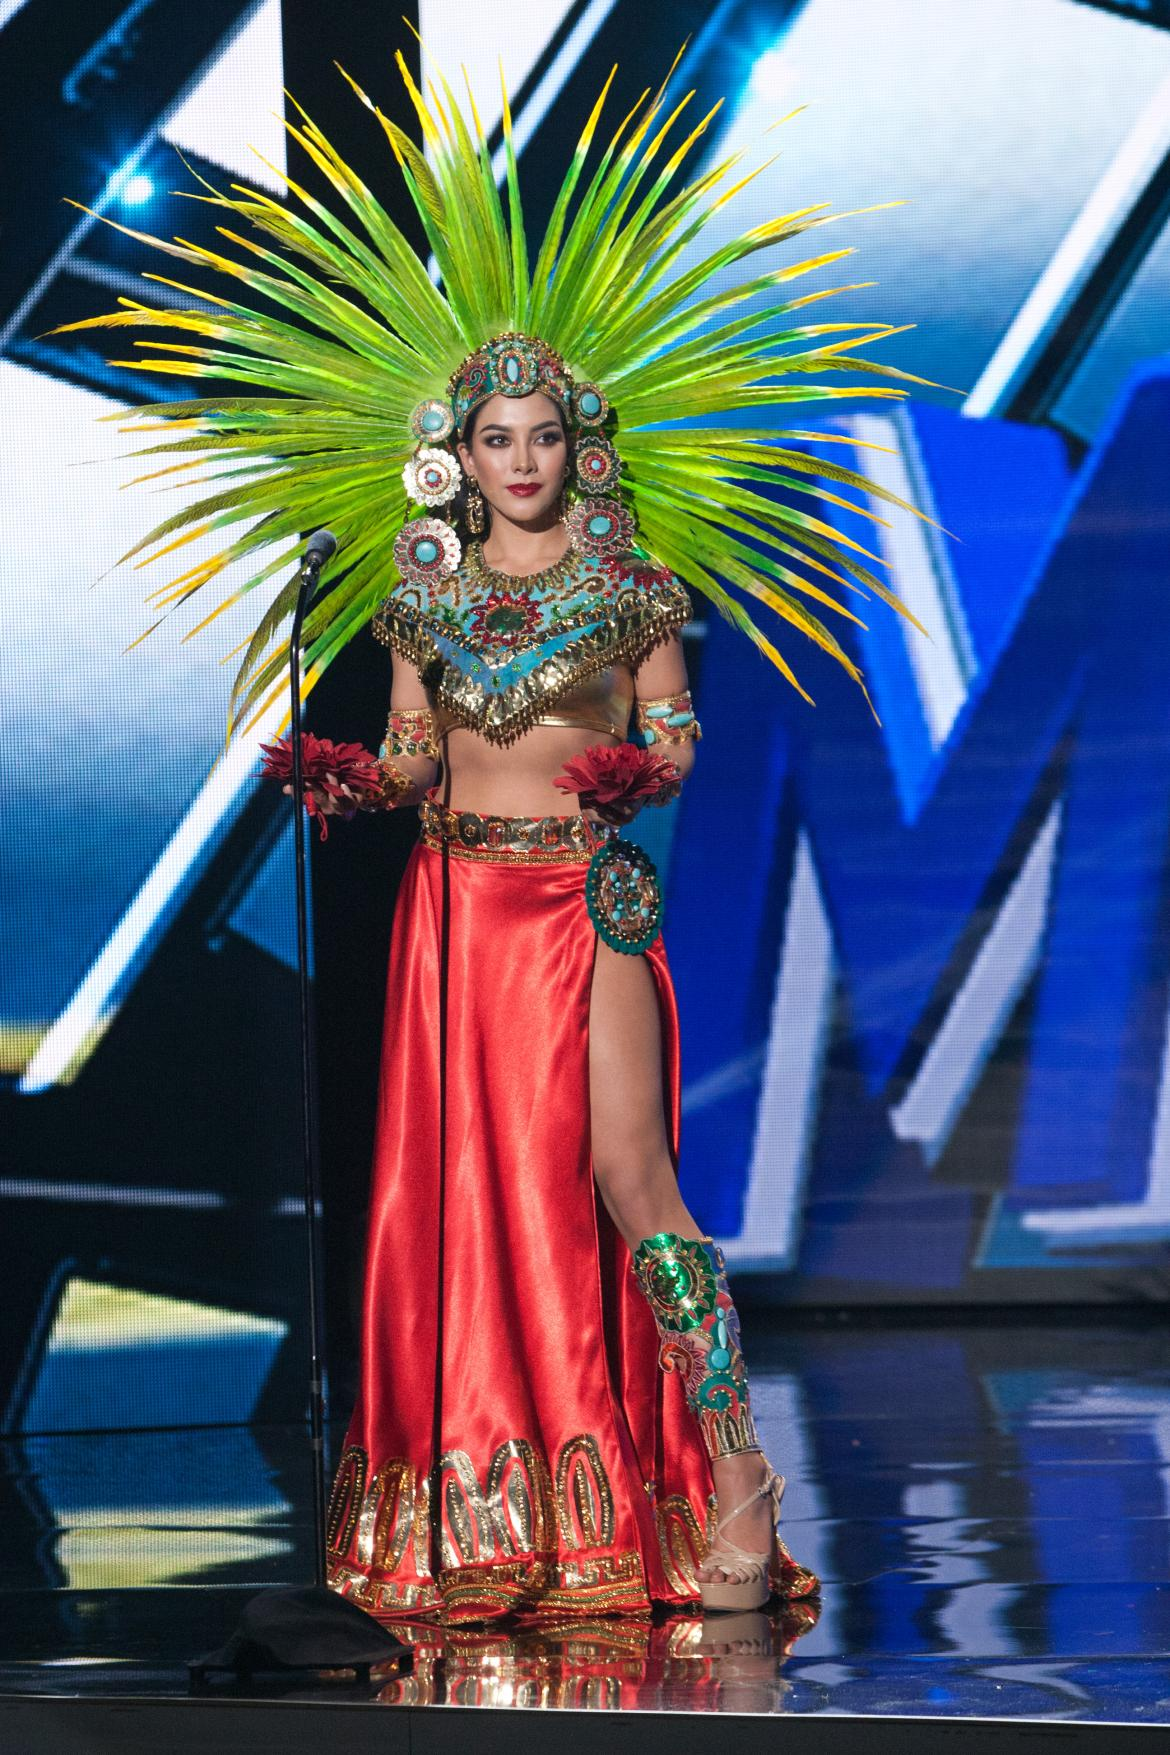 Fotos De Miss Colombia 2017 >> Miss Universe 2015 National Costume Show Photos: See ...